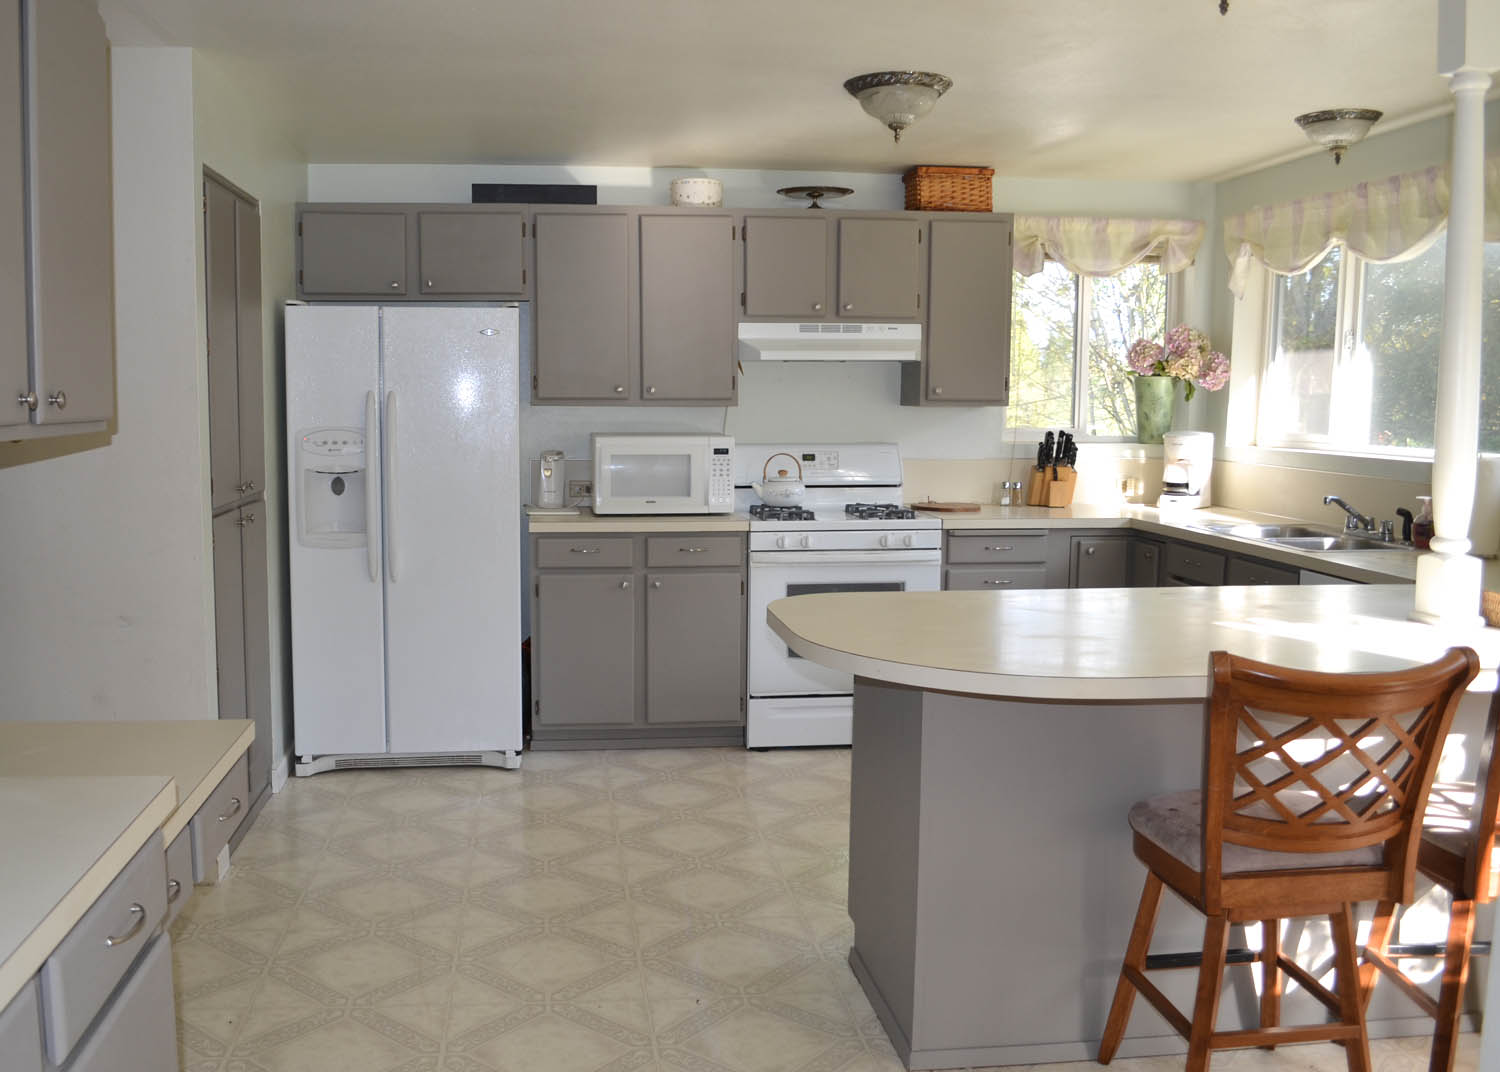 Modern Painting Kitchen Cabinets Decoration (View 7 of 10)